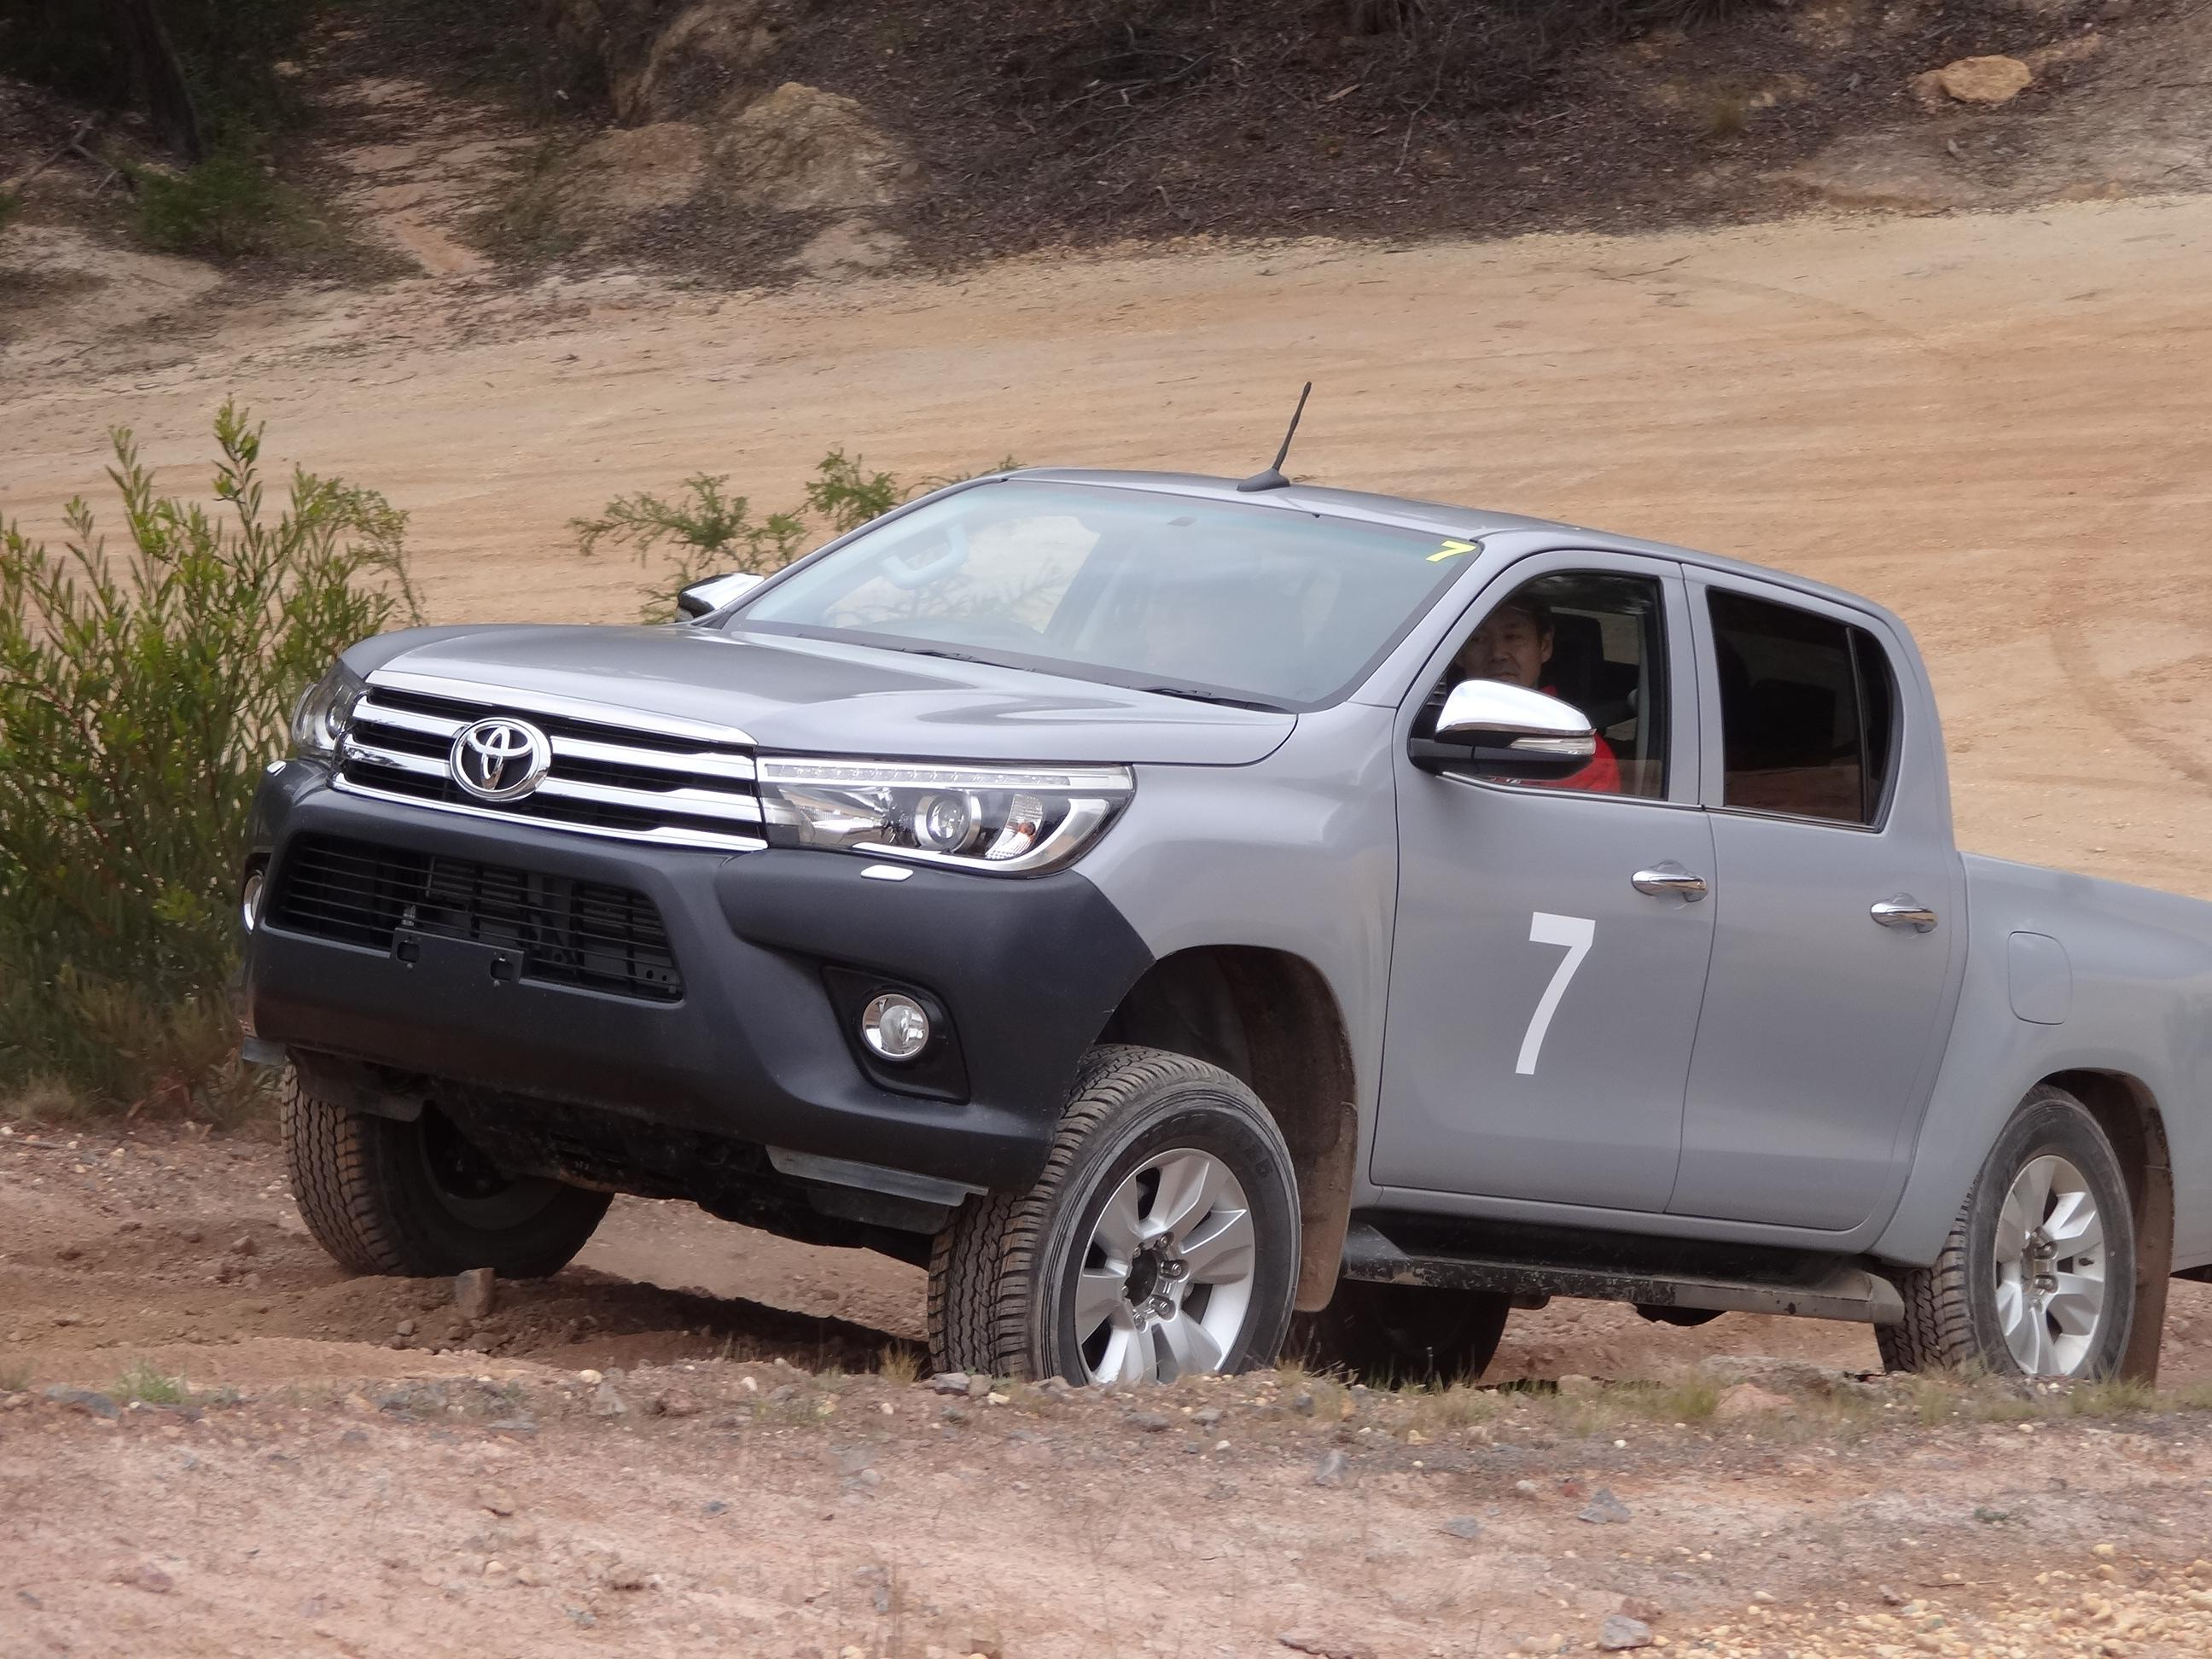 the best small truck in the world - 2016 oyota Hilux Unleashed: Favored By Militants, World's Best ...